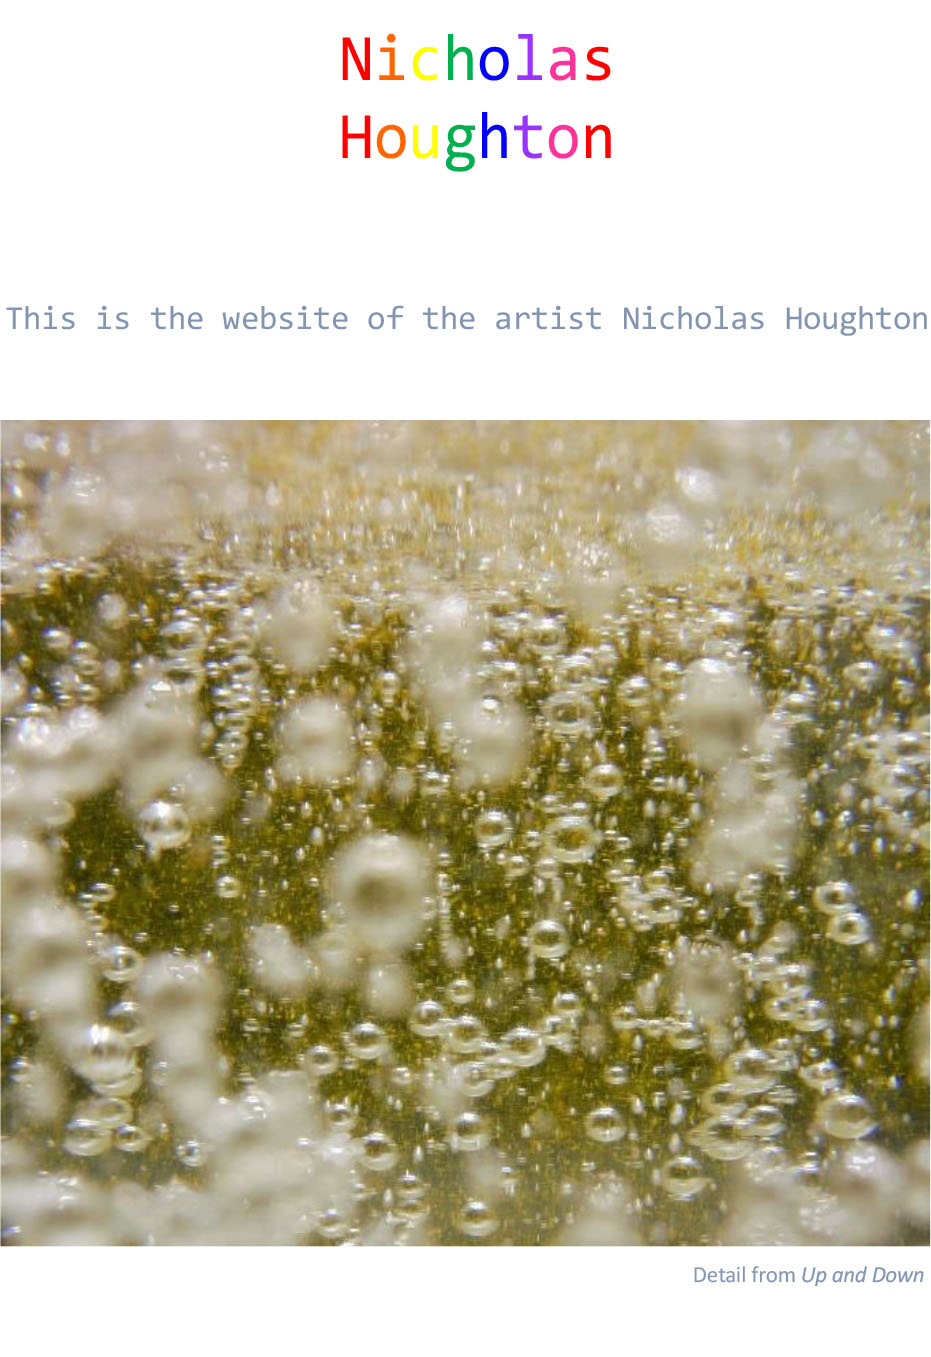 This is the website of the artist Nicholas Houghton